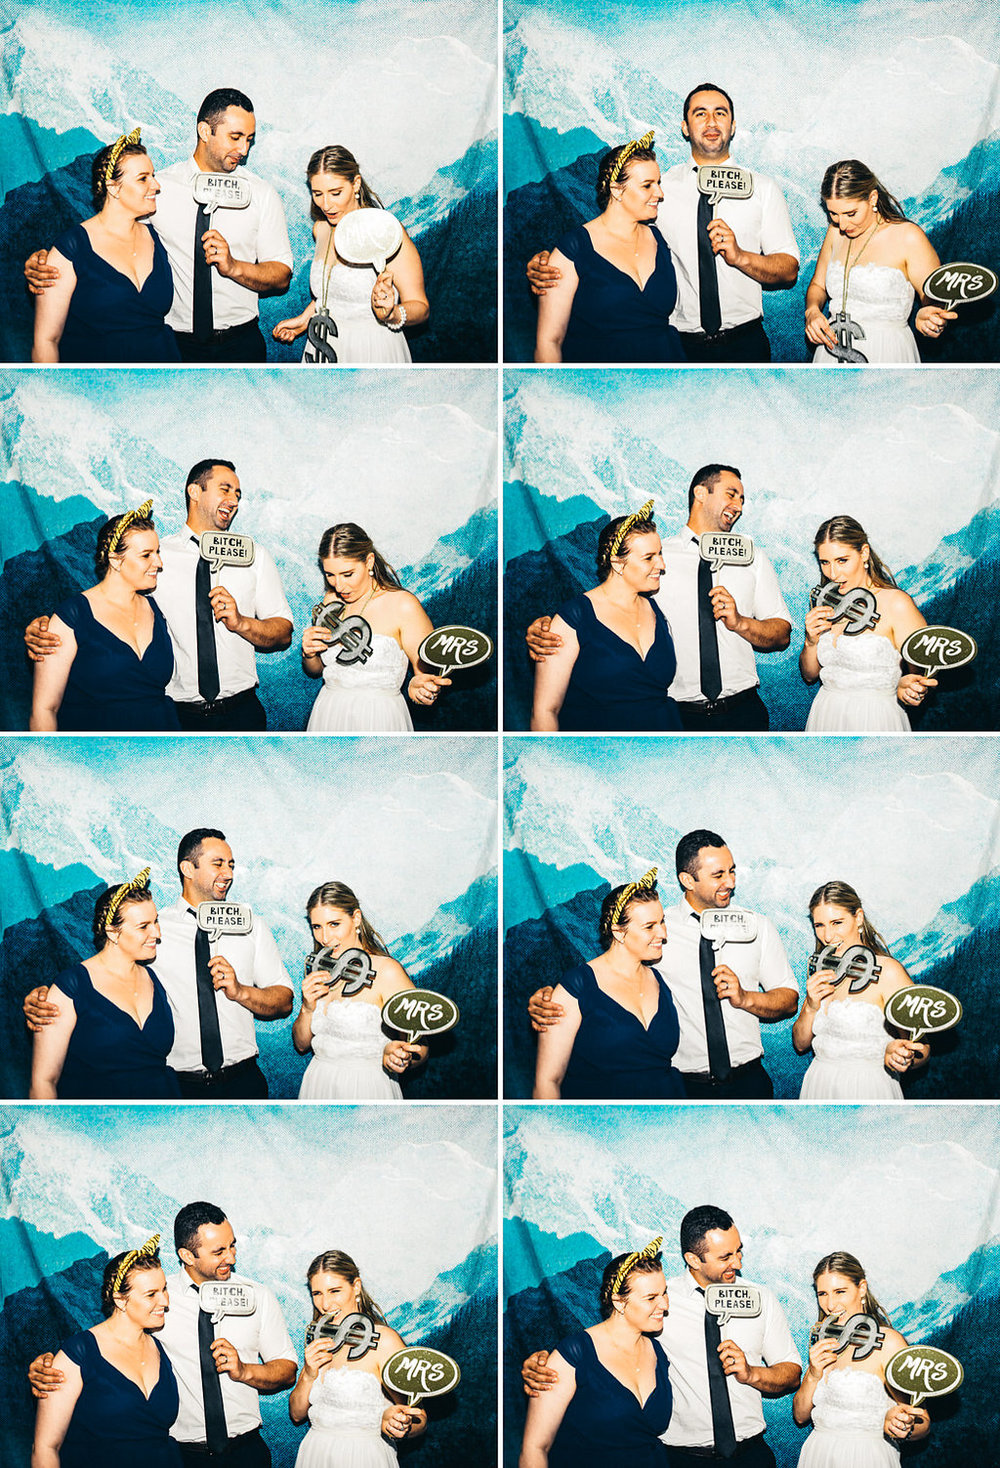 photobooth-003.jpg